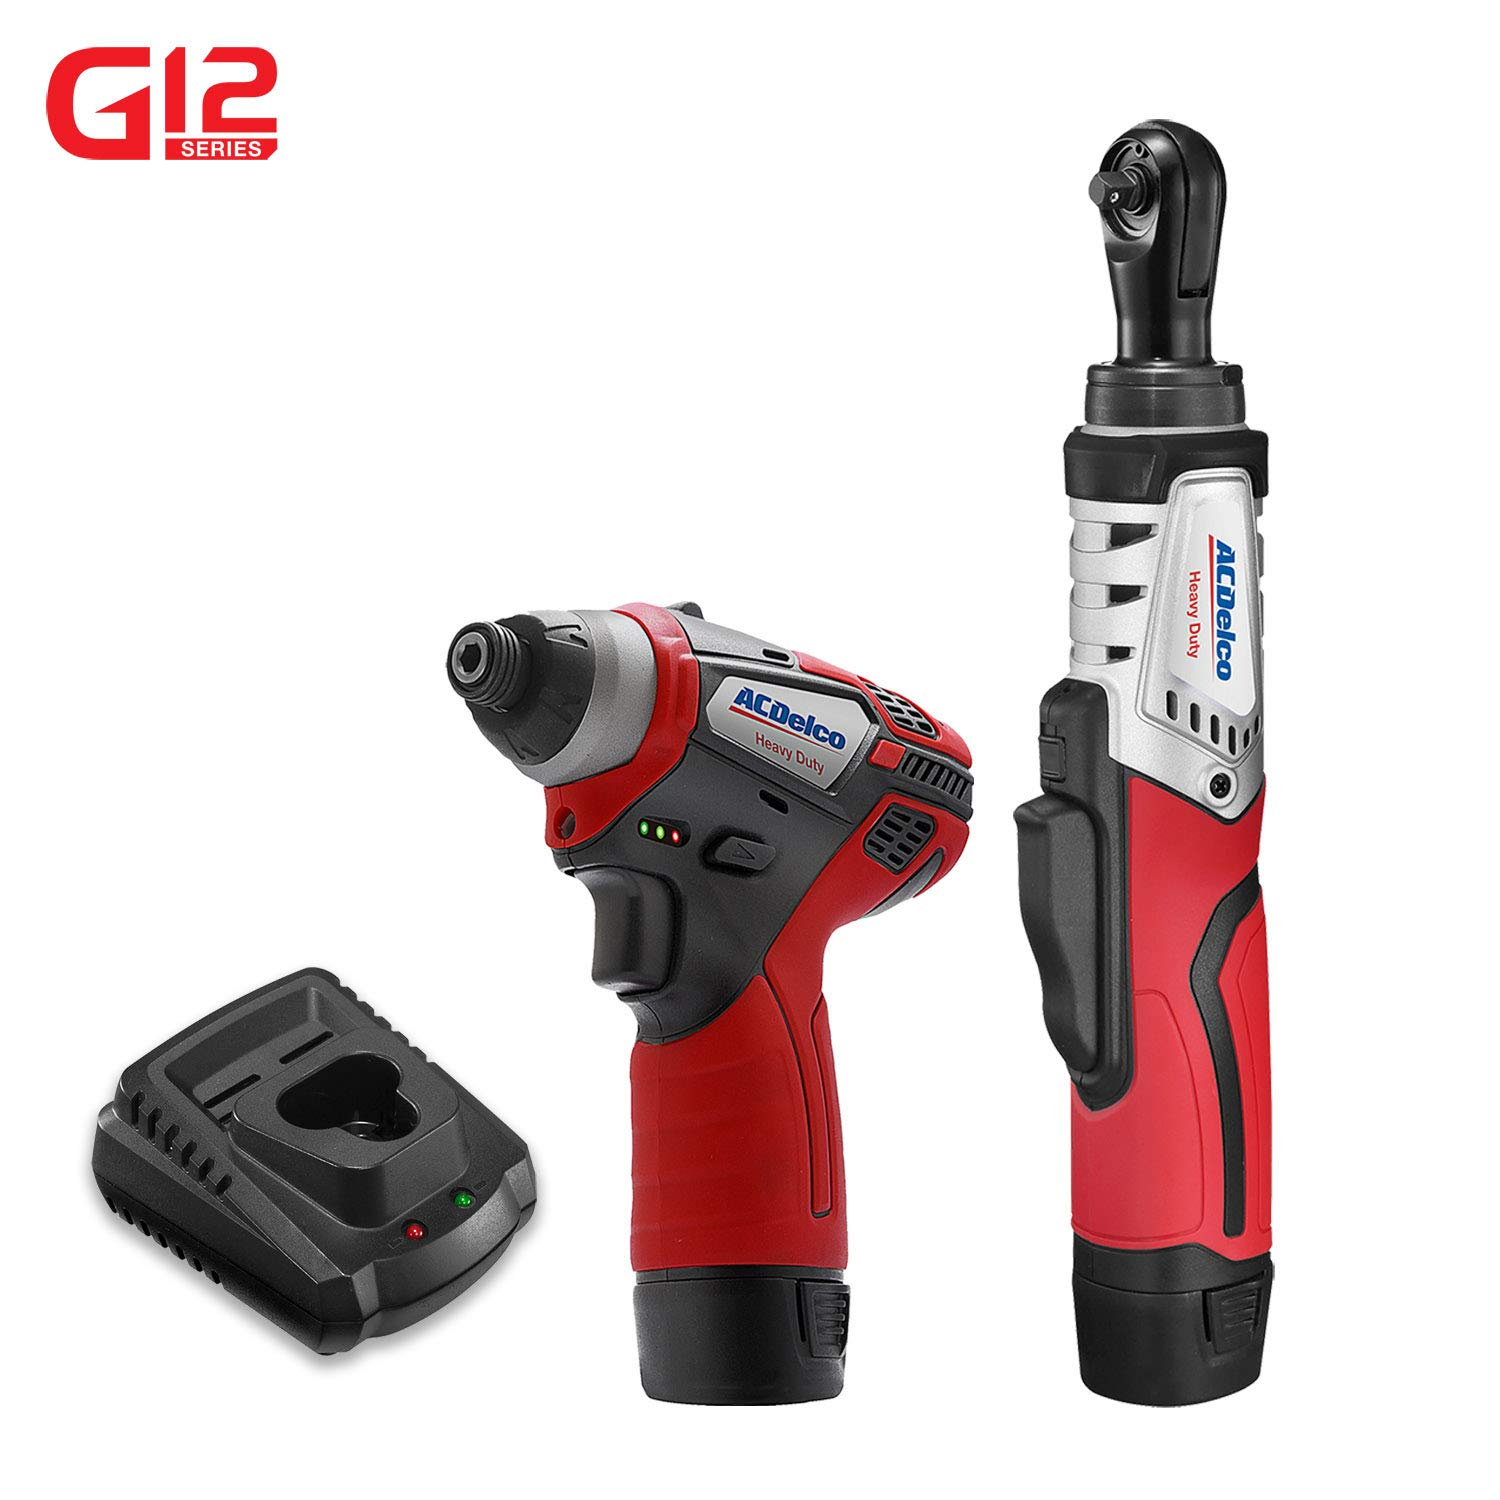 ACDelco G12 Series 2-Tool Combo Kit- 1/4 in. Brushless Ratchet Wrench + 1/4 in. Hex Power Impact Driver, two battery, charger, ARW12102-K4